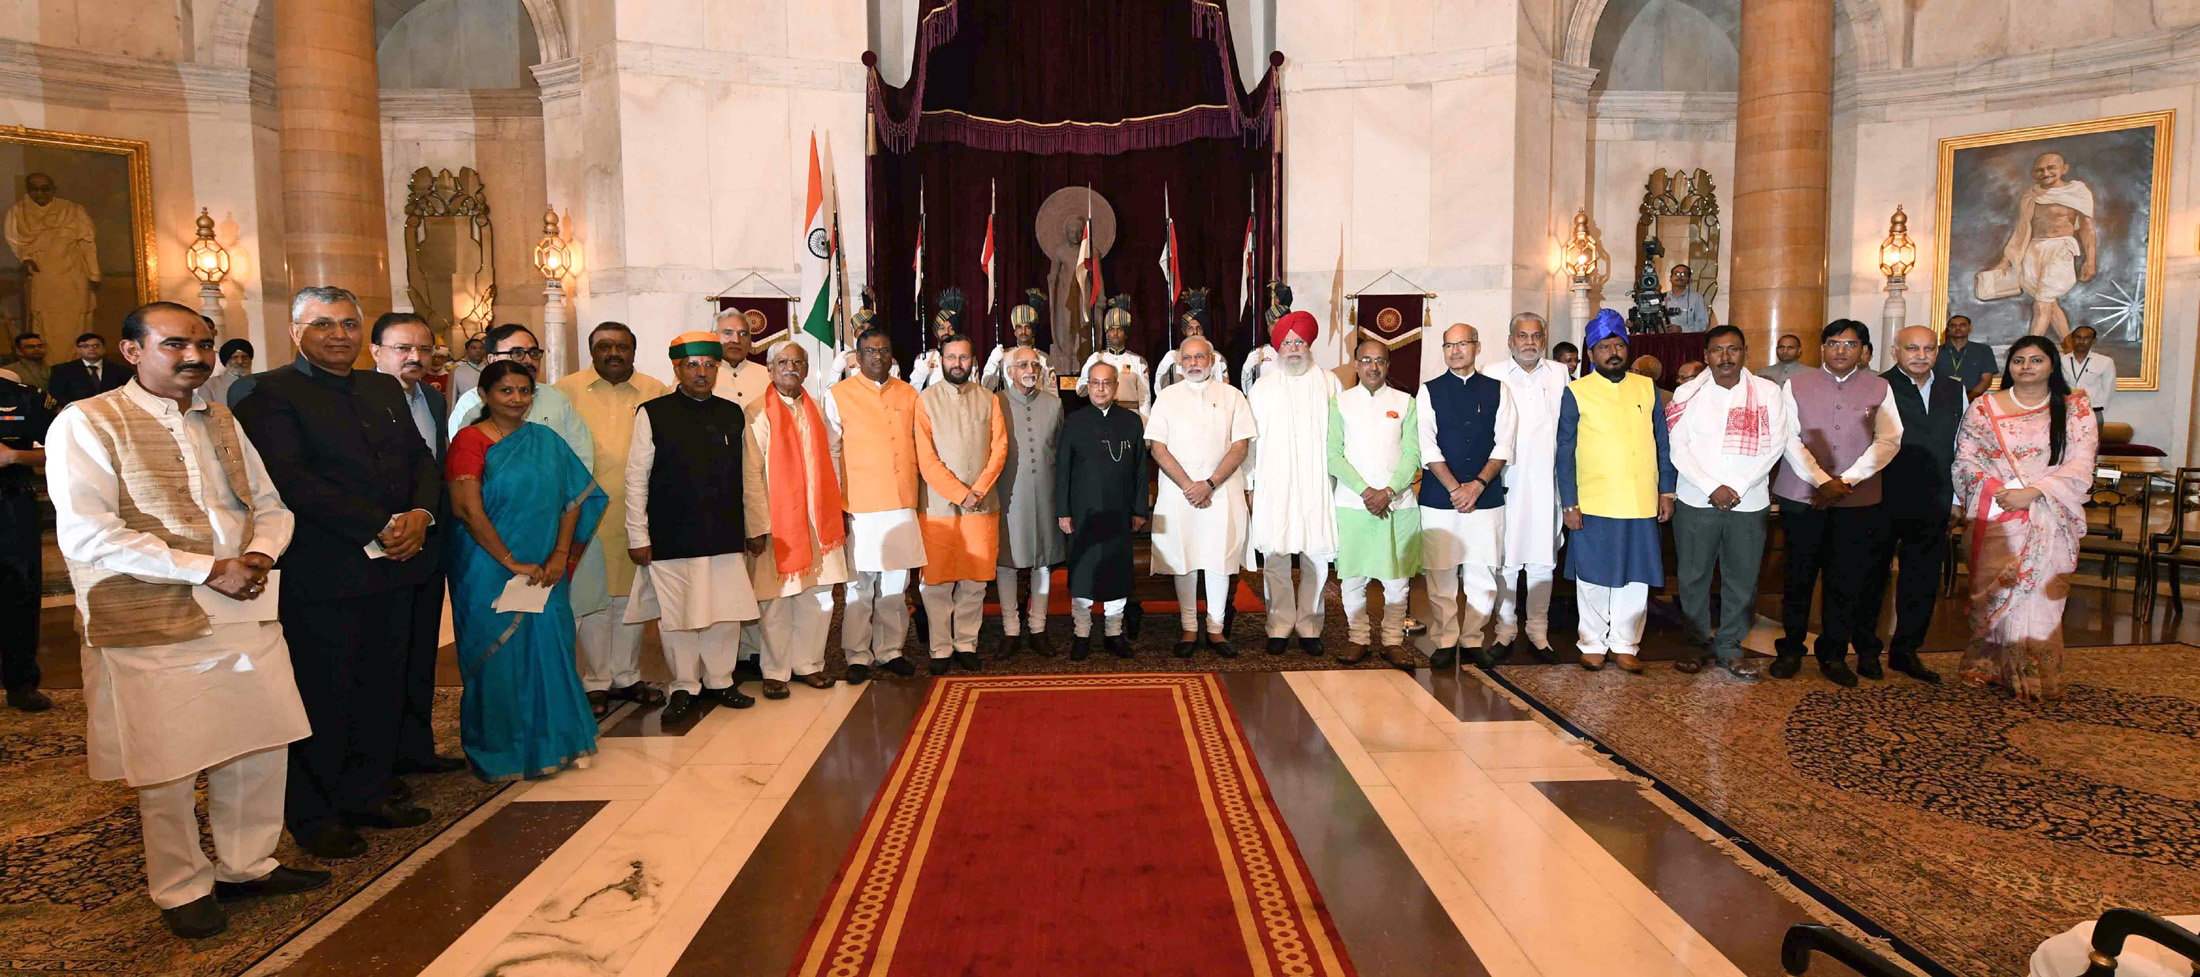 President Pranb Mukherjee - With Council of Ministers of PM Modi